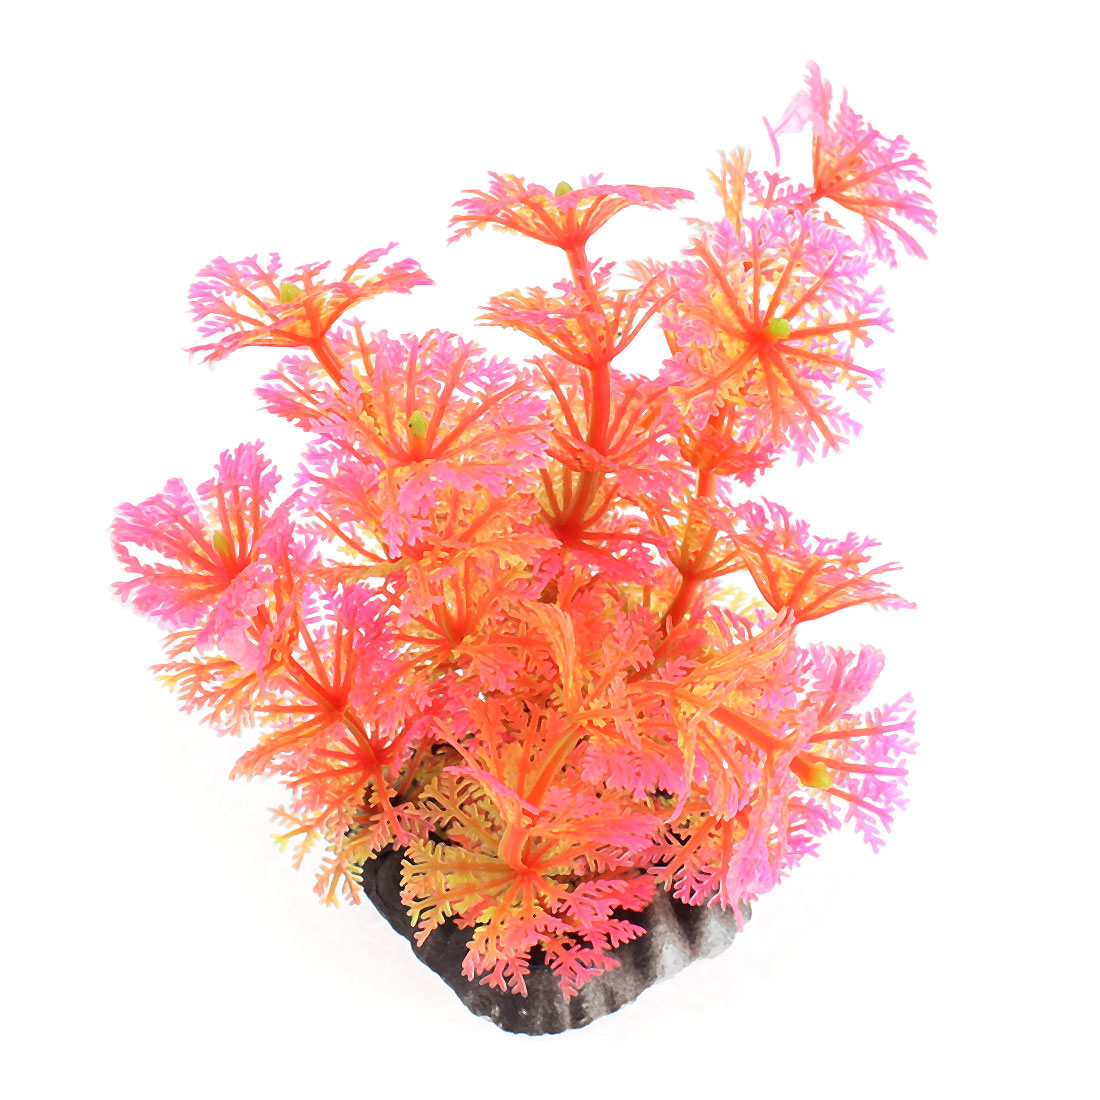 "Aquarium Plastic Artificial Aquatic Plant Ornament 4"" High"